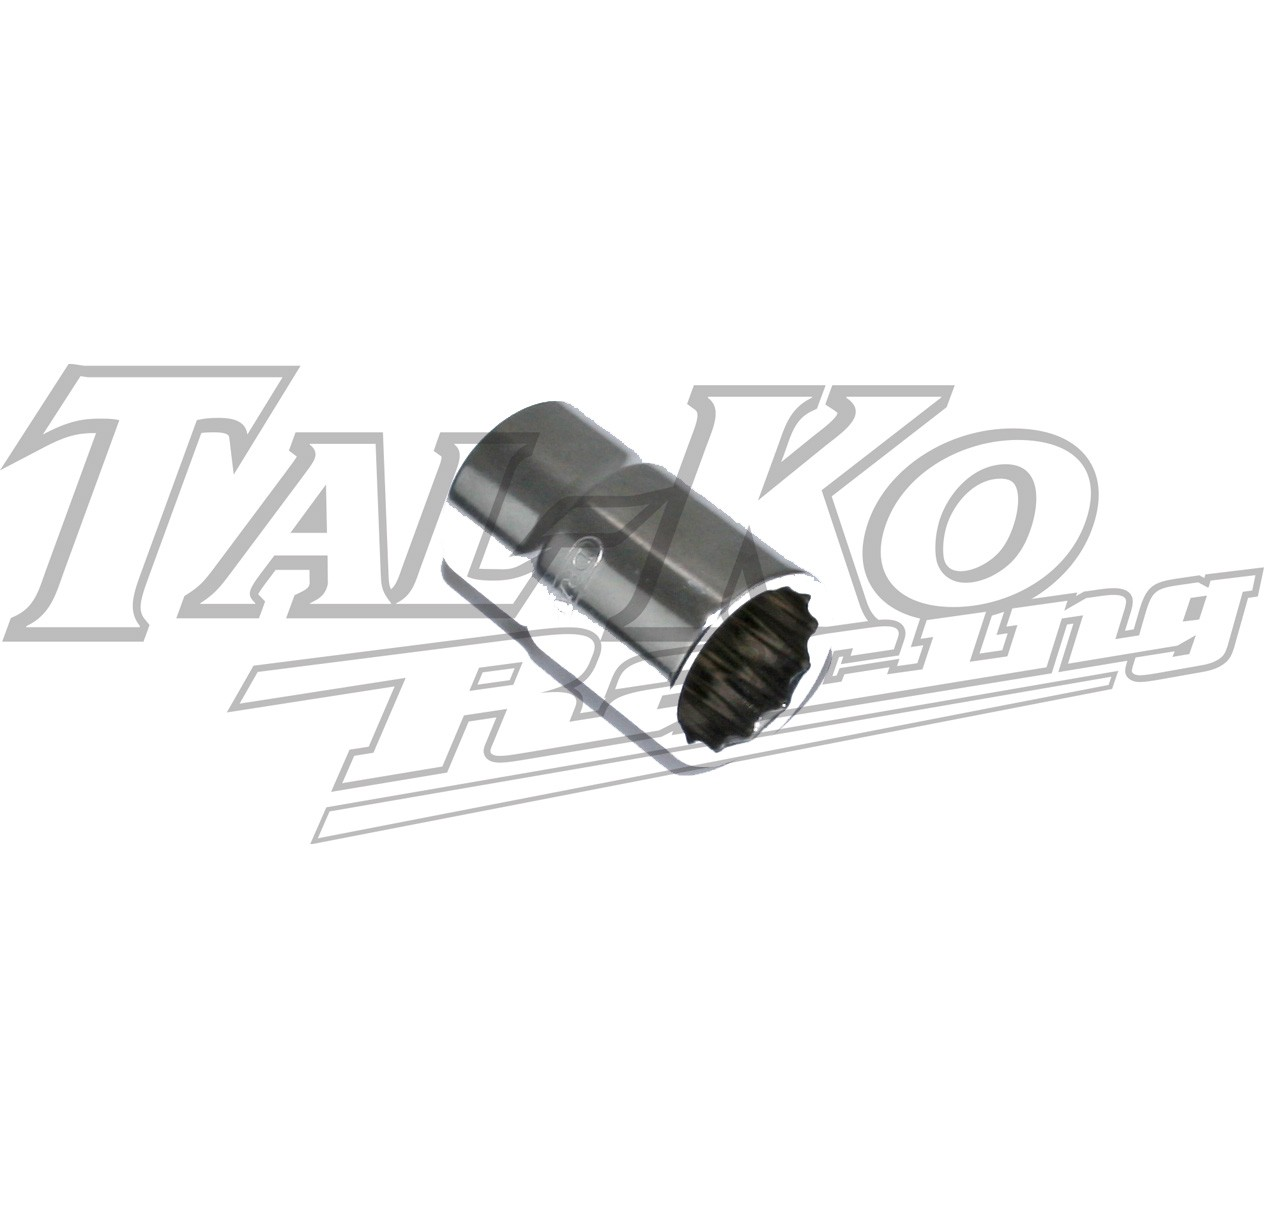 "TKM BT82 SOCKET 1/2"" x 17mm A/F"